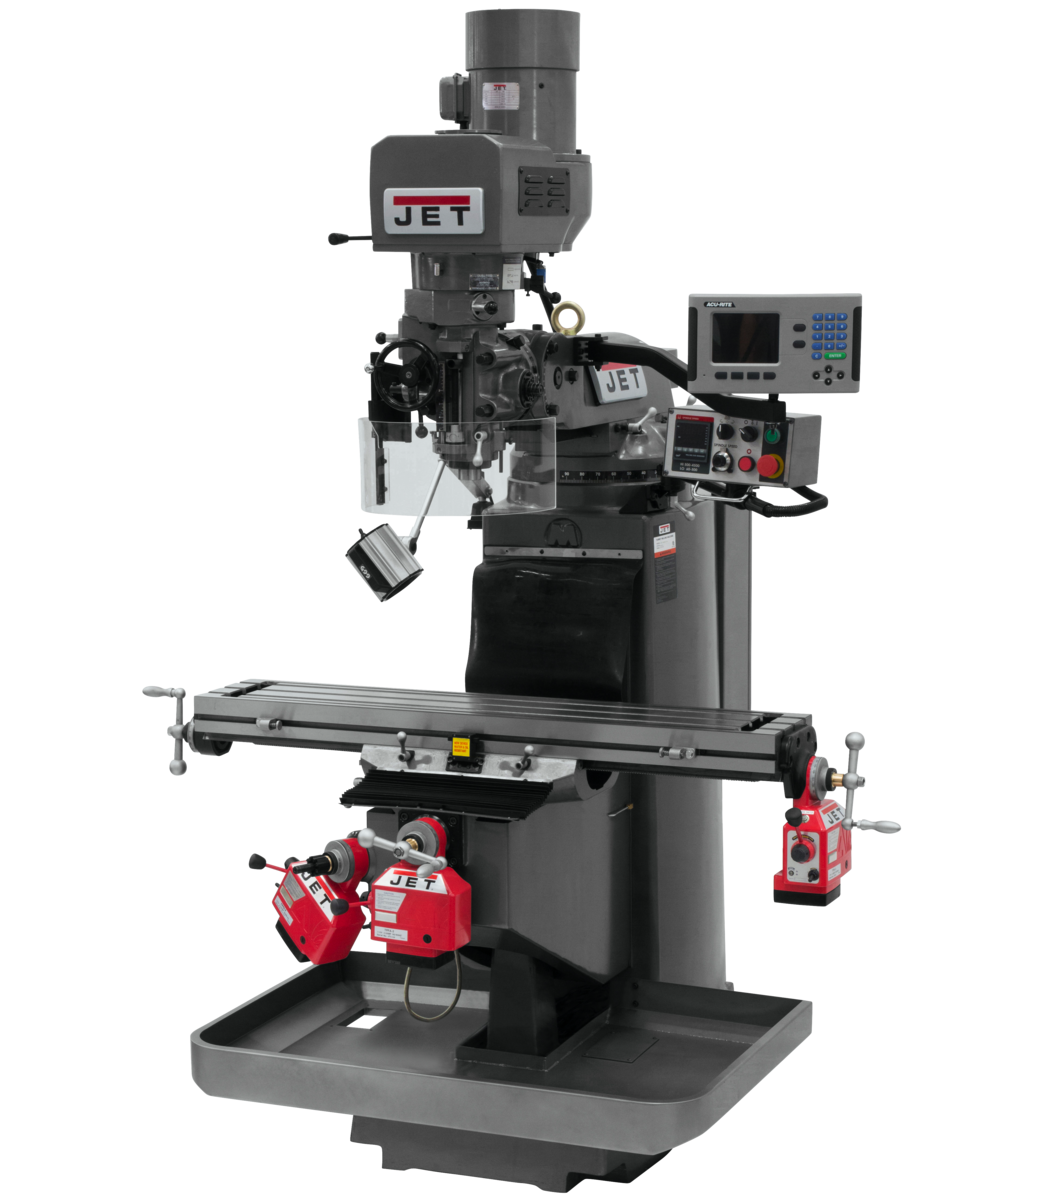 JTM-949EVS Mill With Acu-Rite 203 DRO With X, Y and Z-Axis Powerfeeds